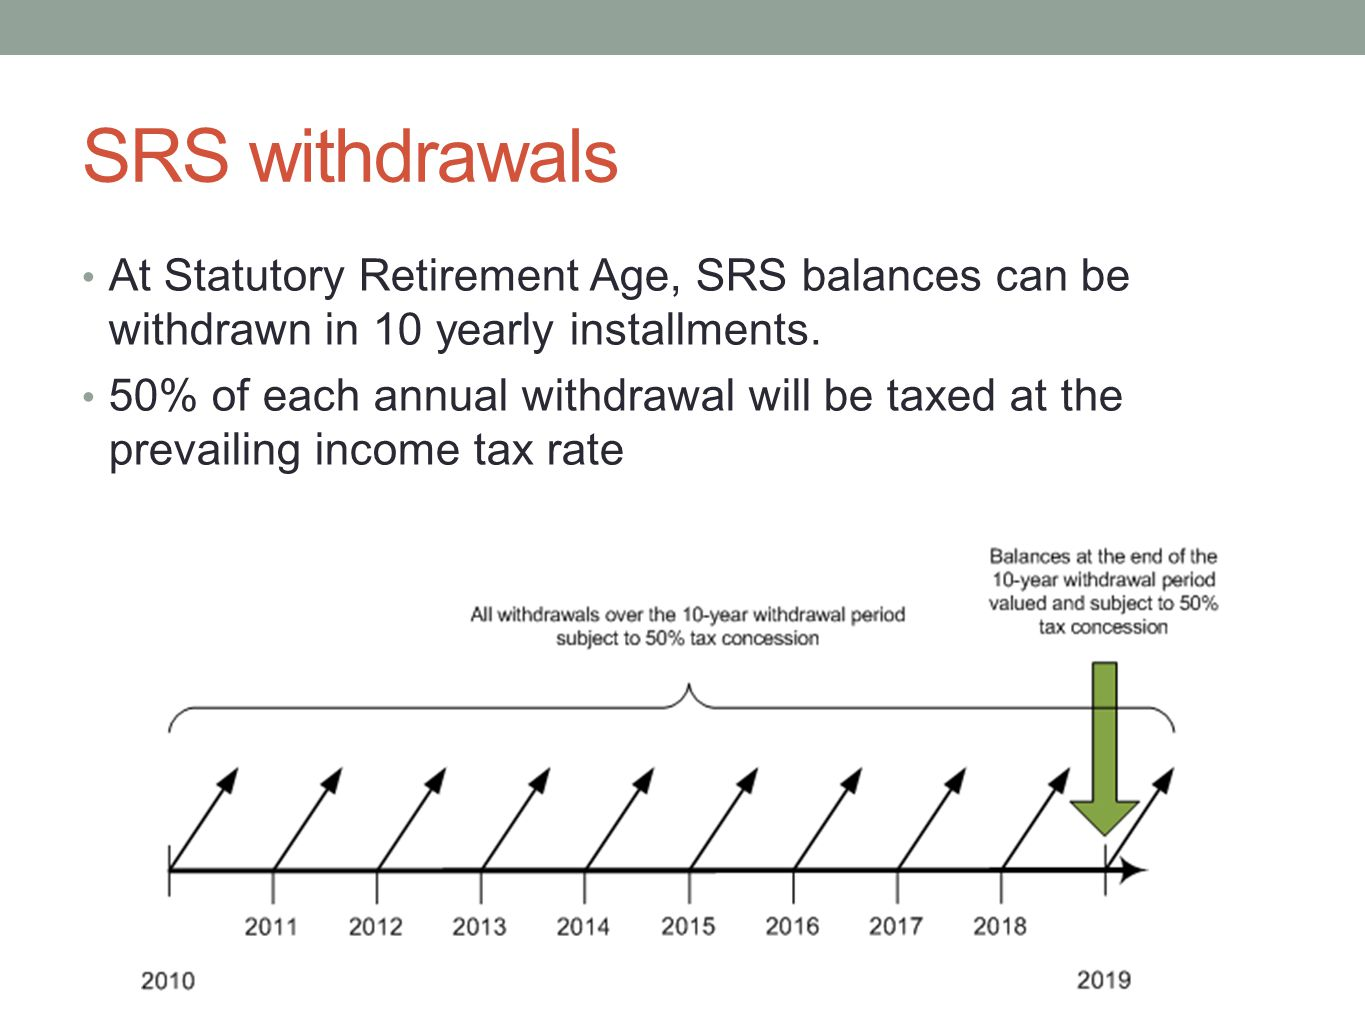 SRS withdrawals At Statutory Retirement Age, SRS balances can be withdrawn in 10 yearly installments.